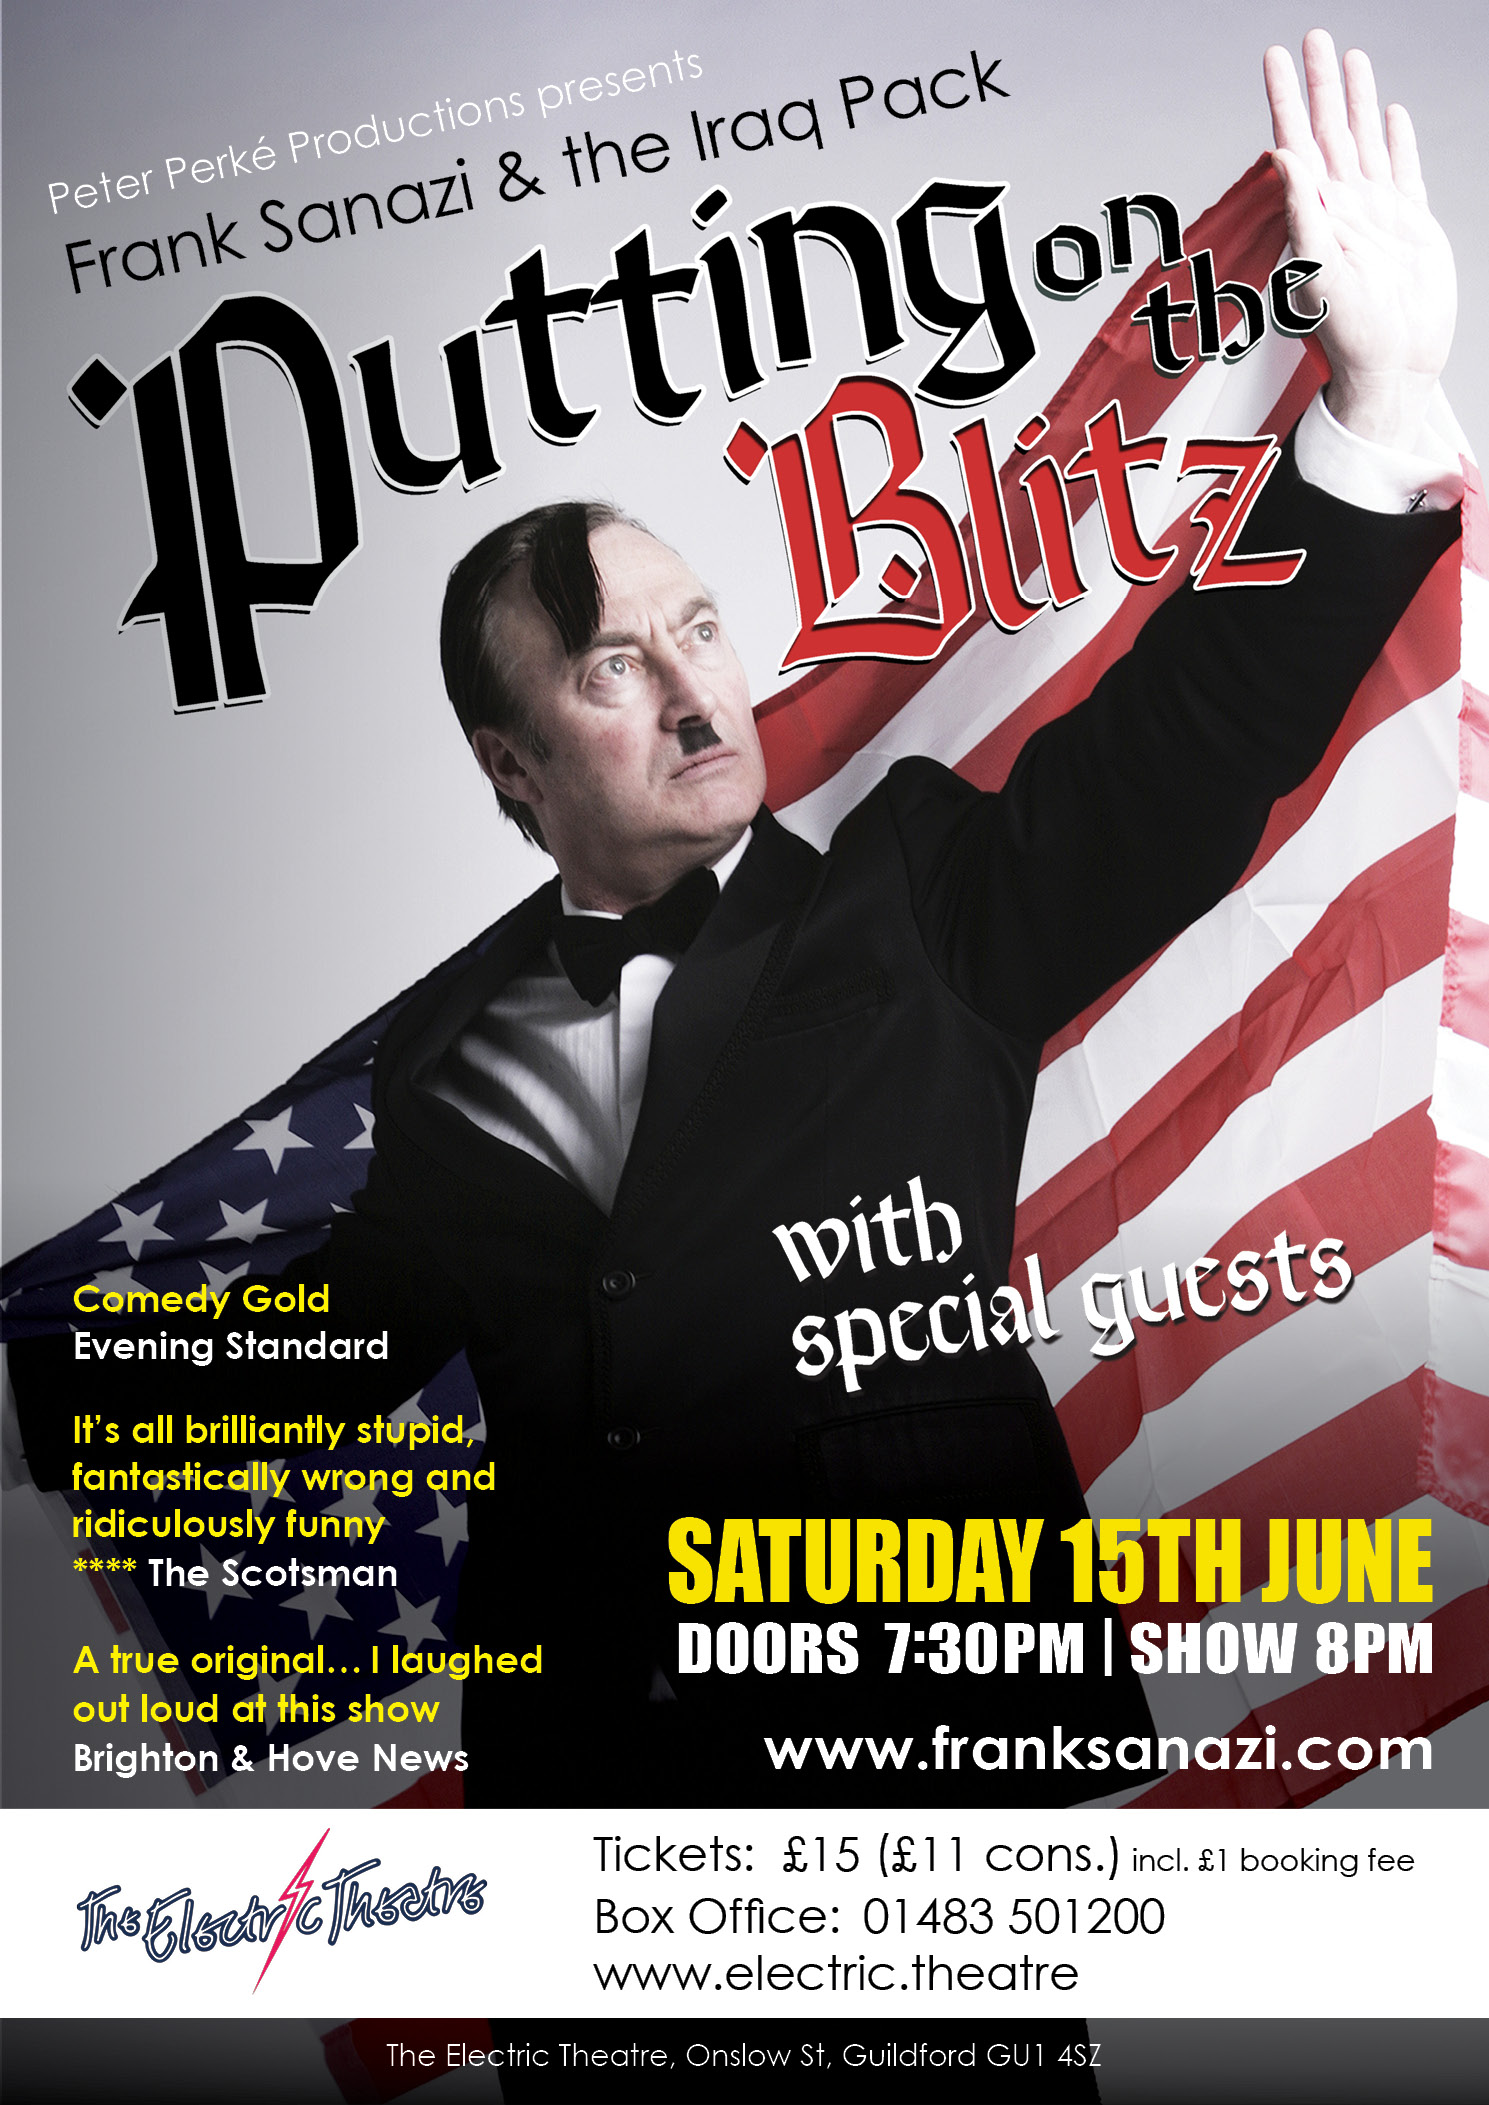 Frank Sanazi & The Iraq Pack: Putting on the Blitz (Guildford)